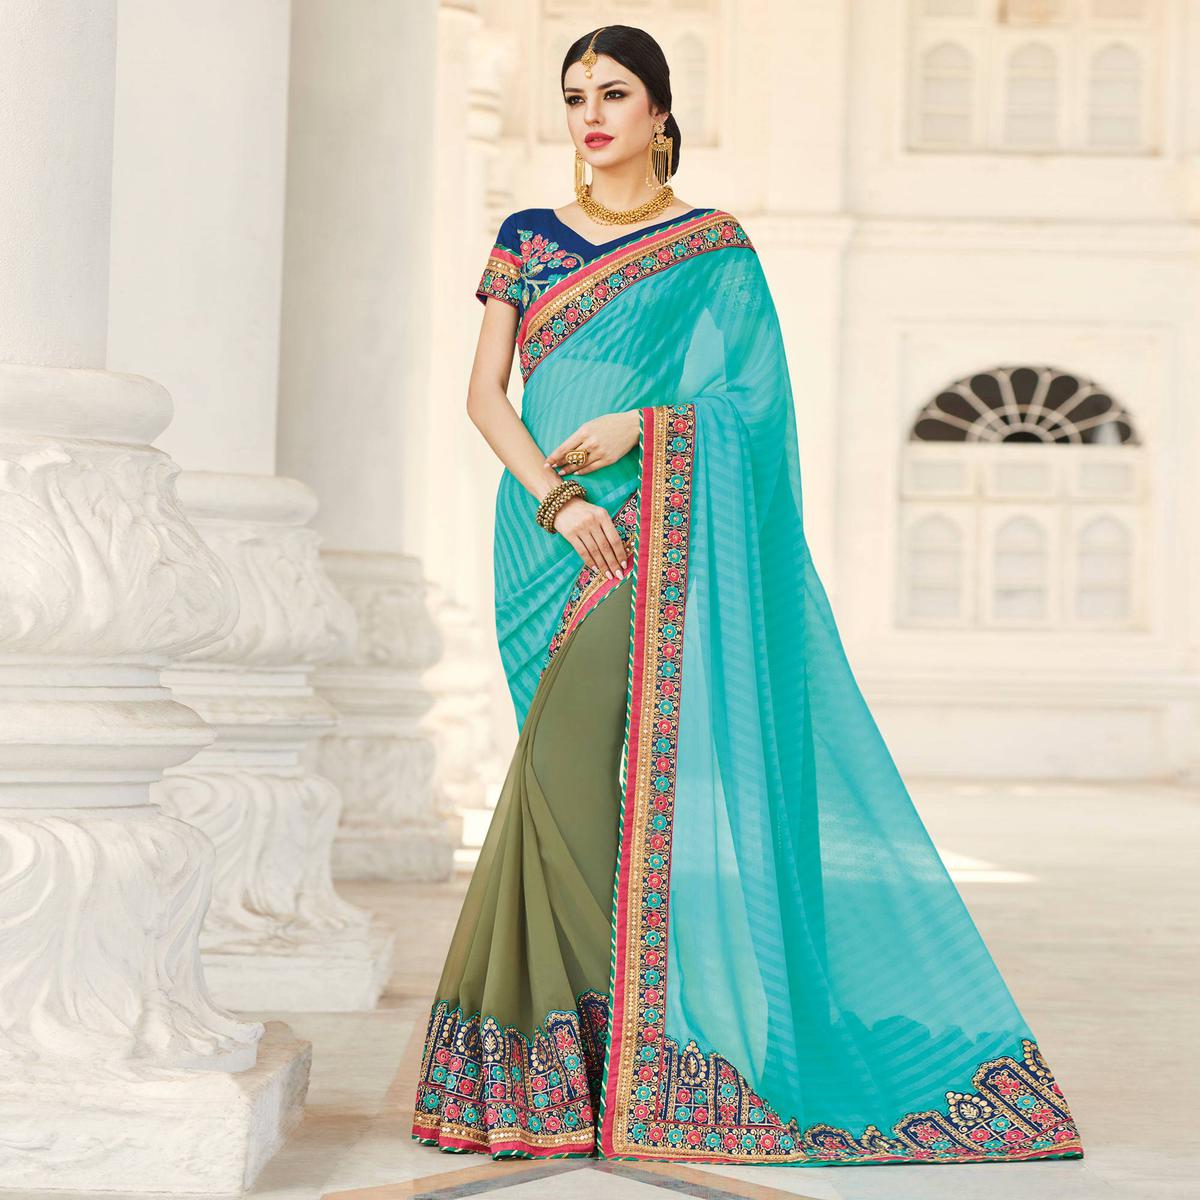 Preferable Olive Green - Blue Colored Party Wear Embroidered Georgette Saree